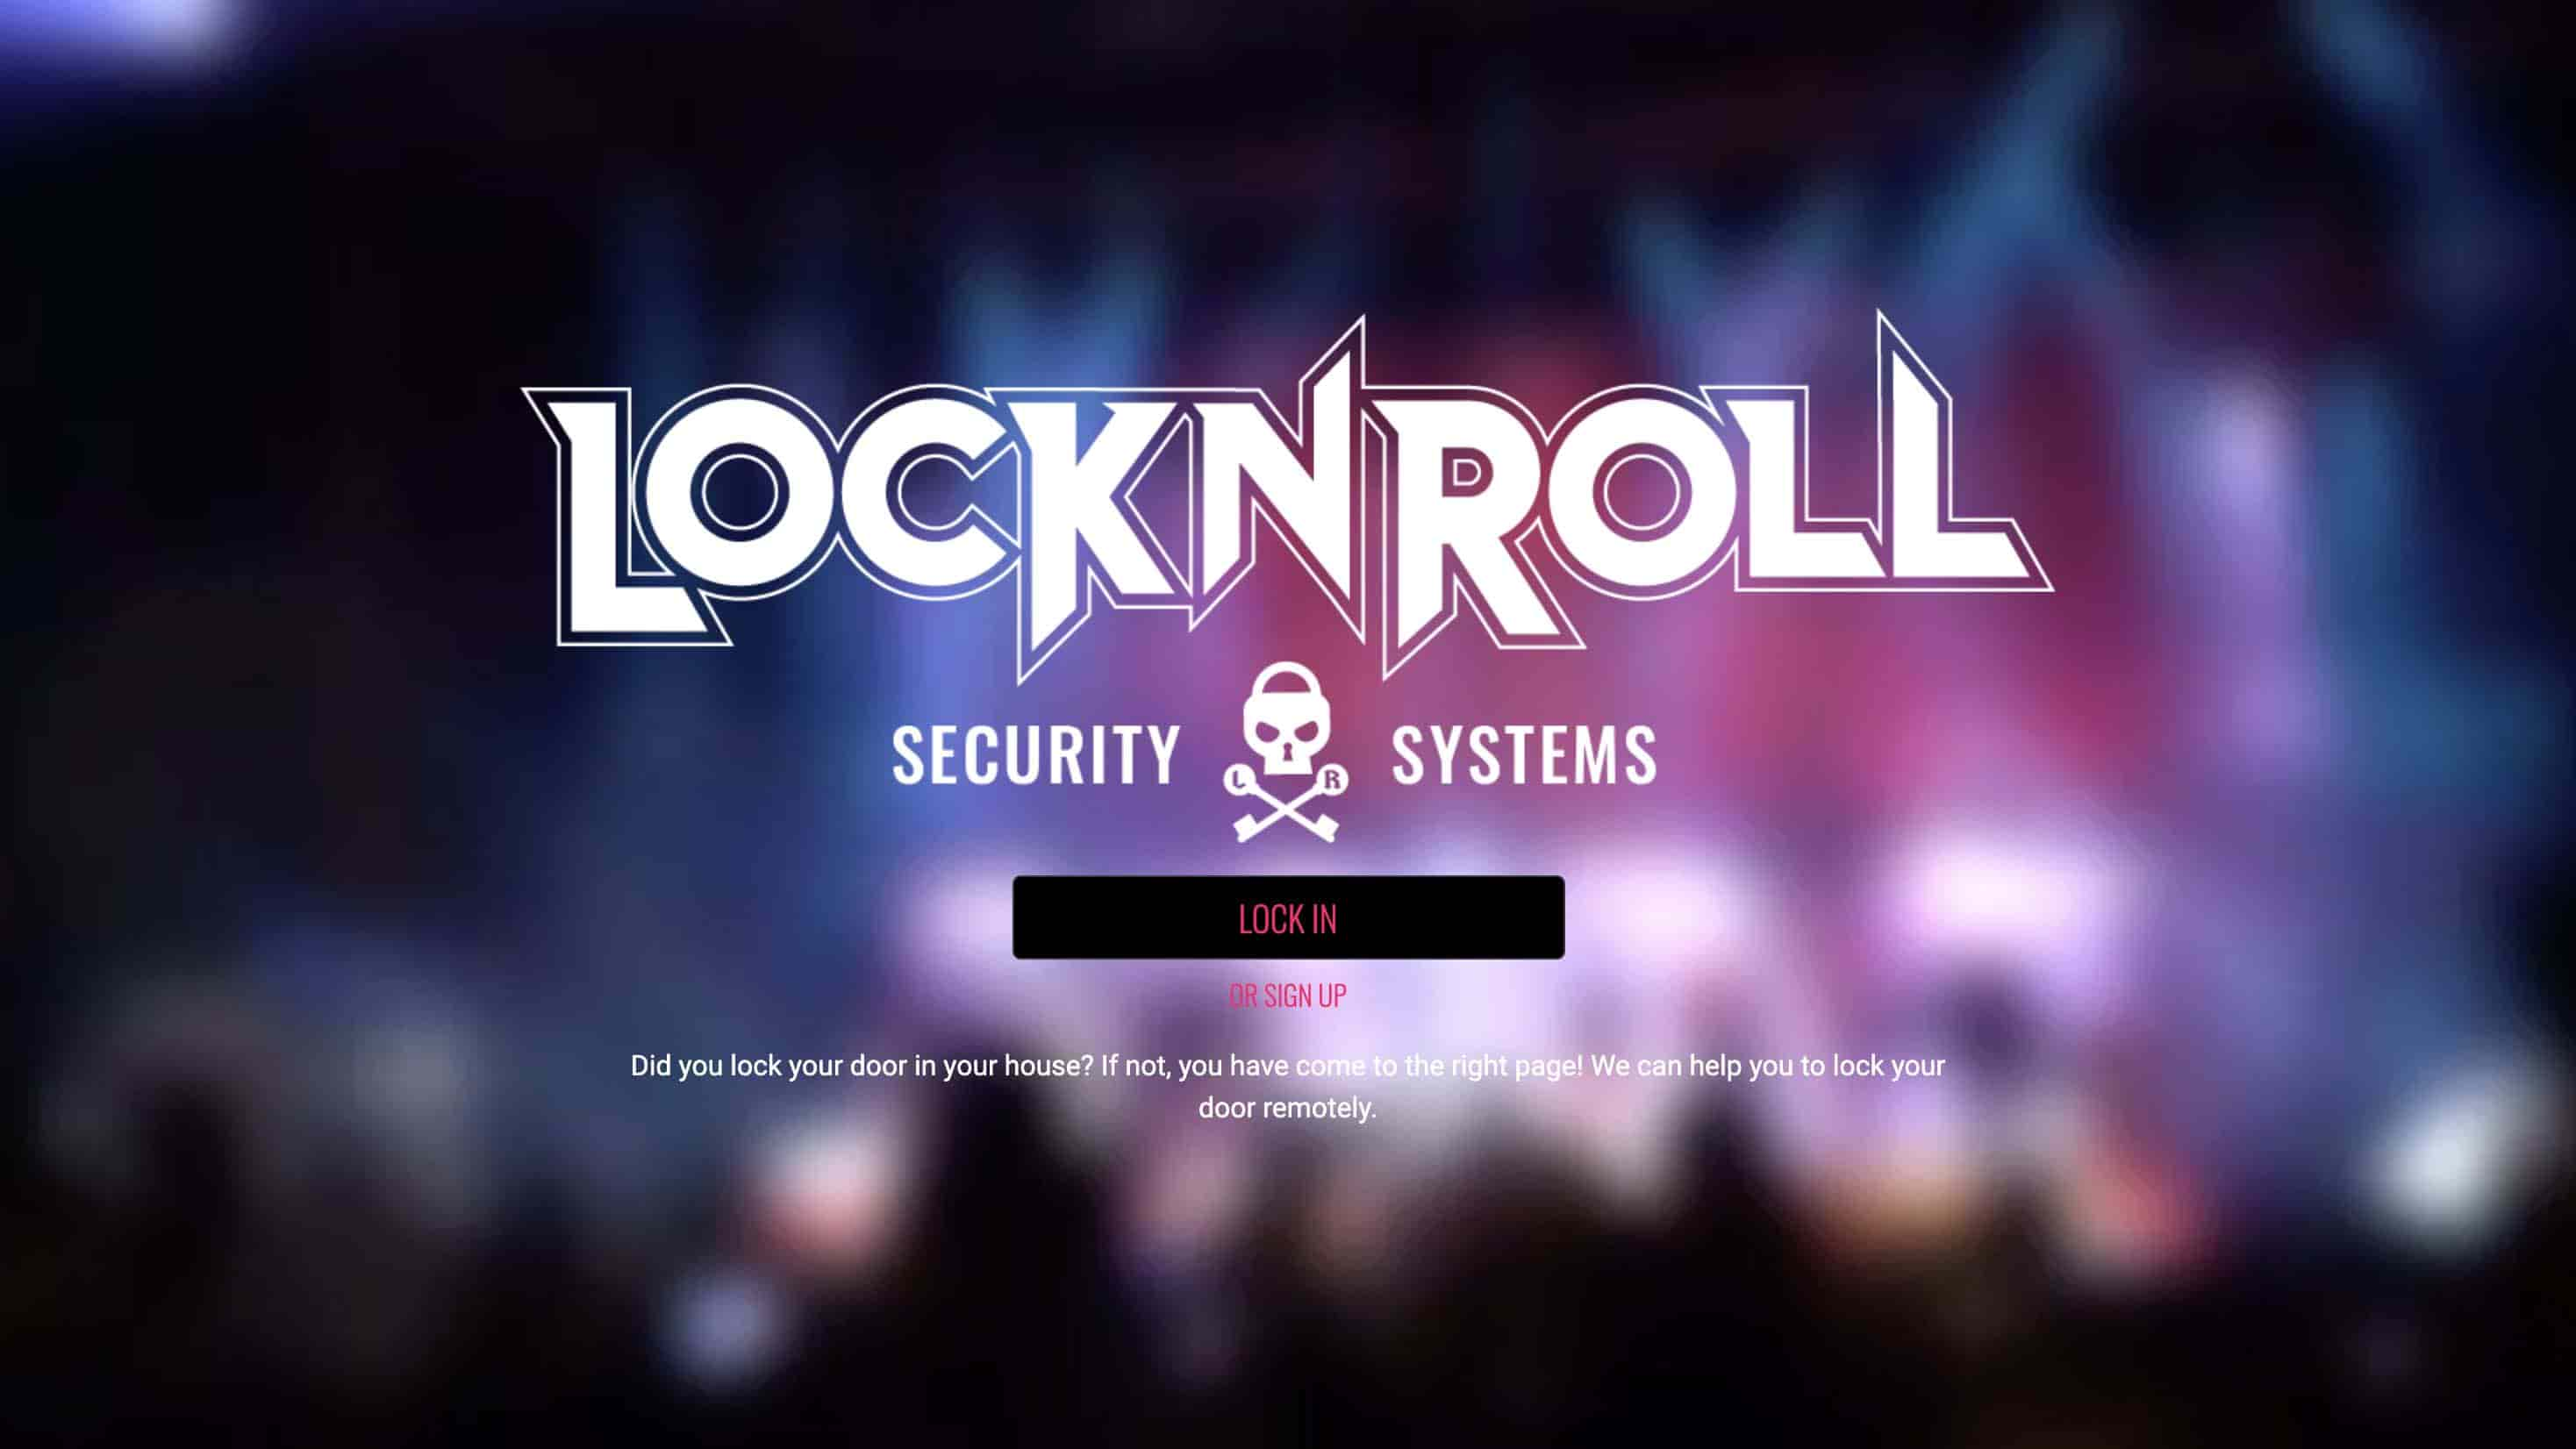 lock and roll logo door lock web application by next academy students